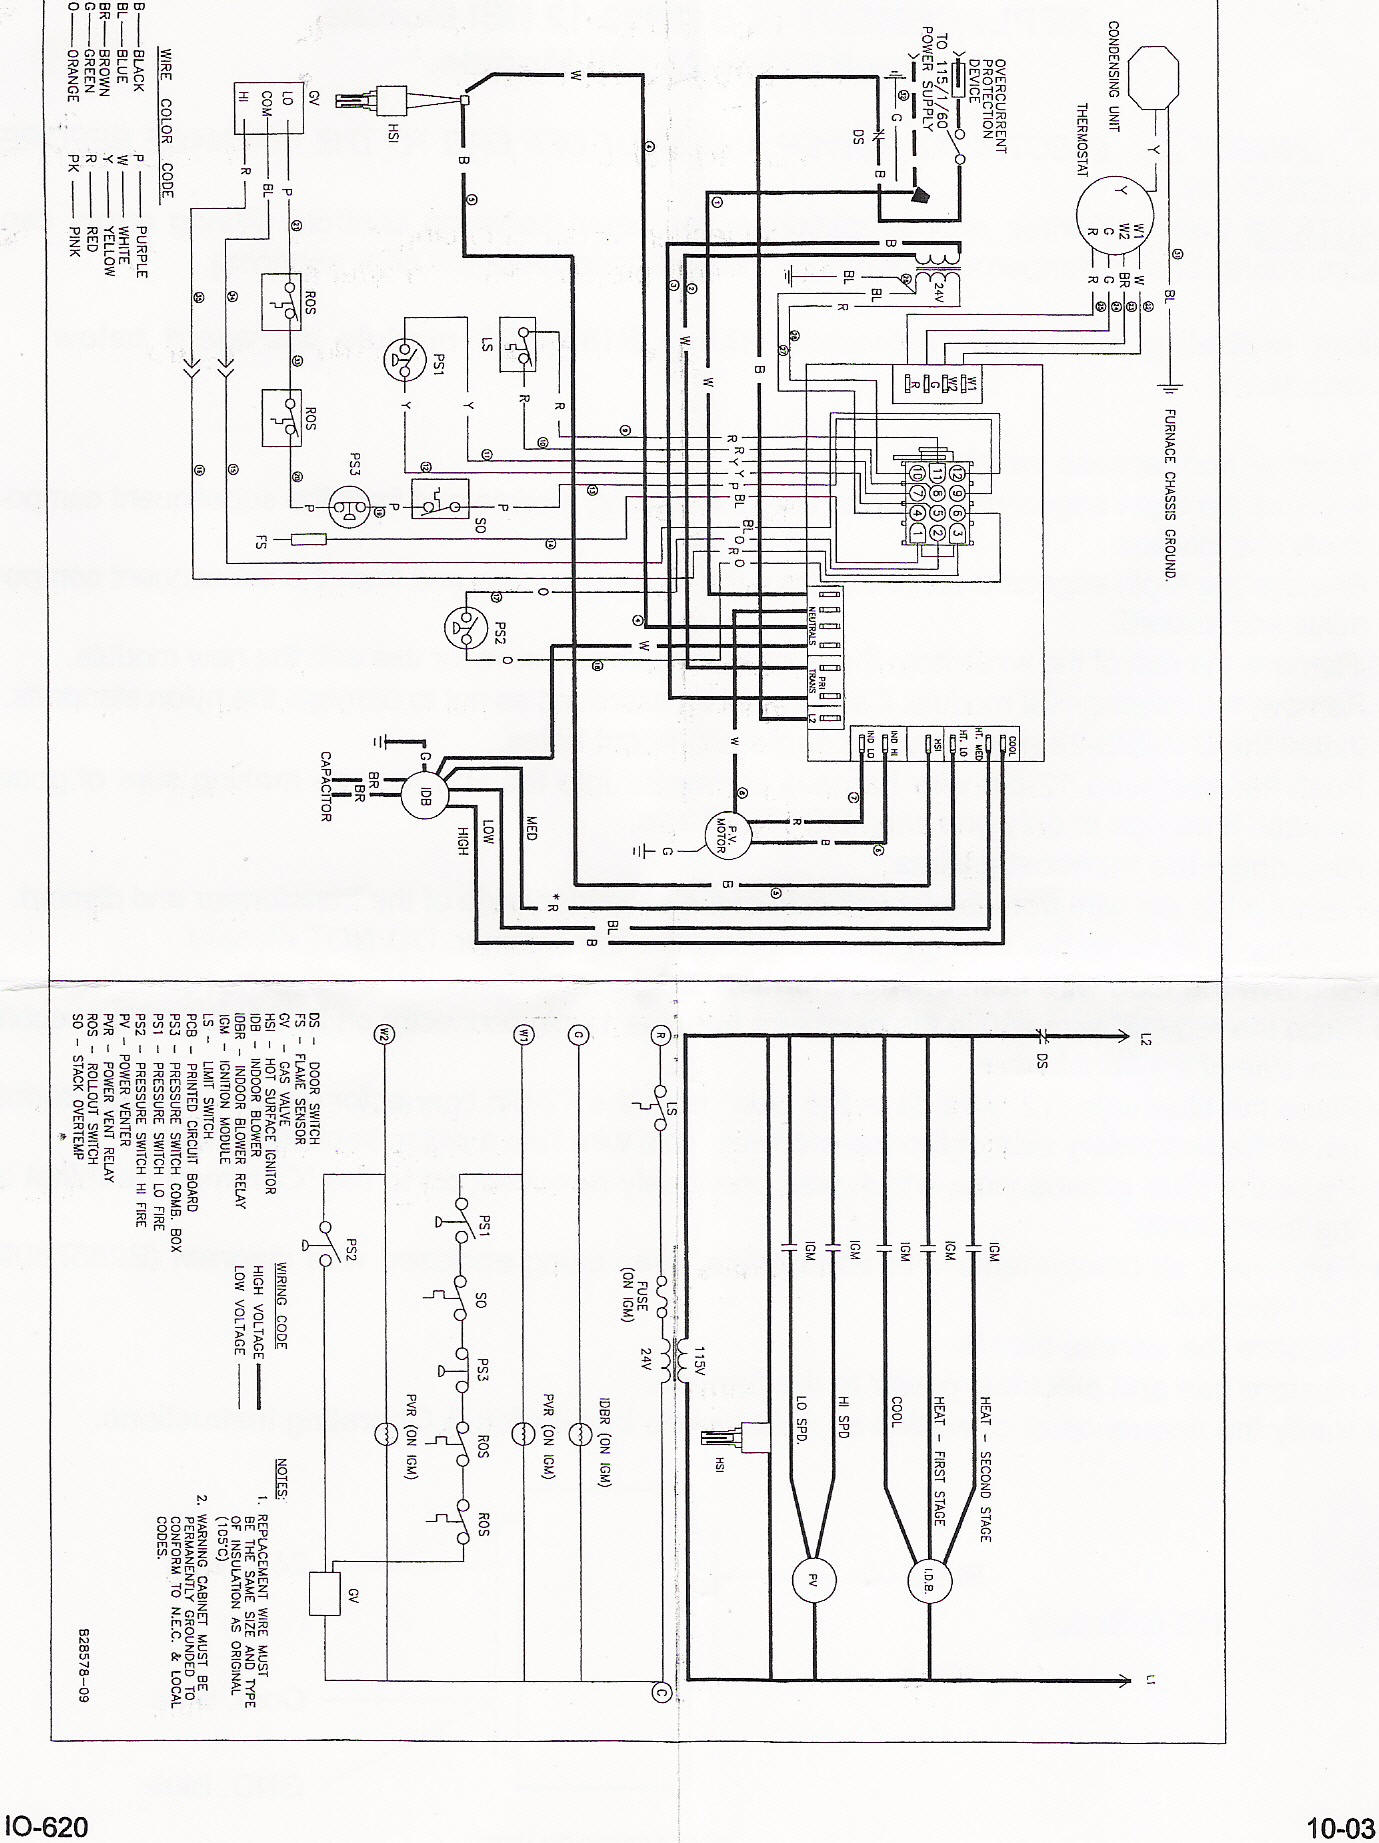 goodma2 instr goodman control board b18099 23 instructions